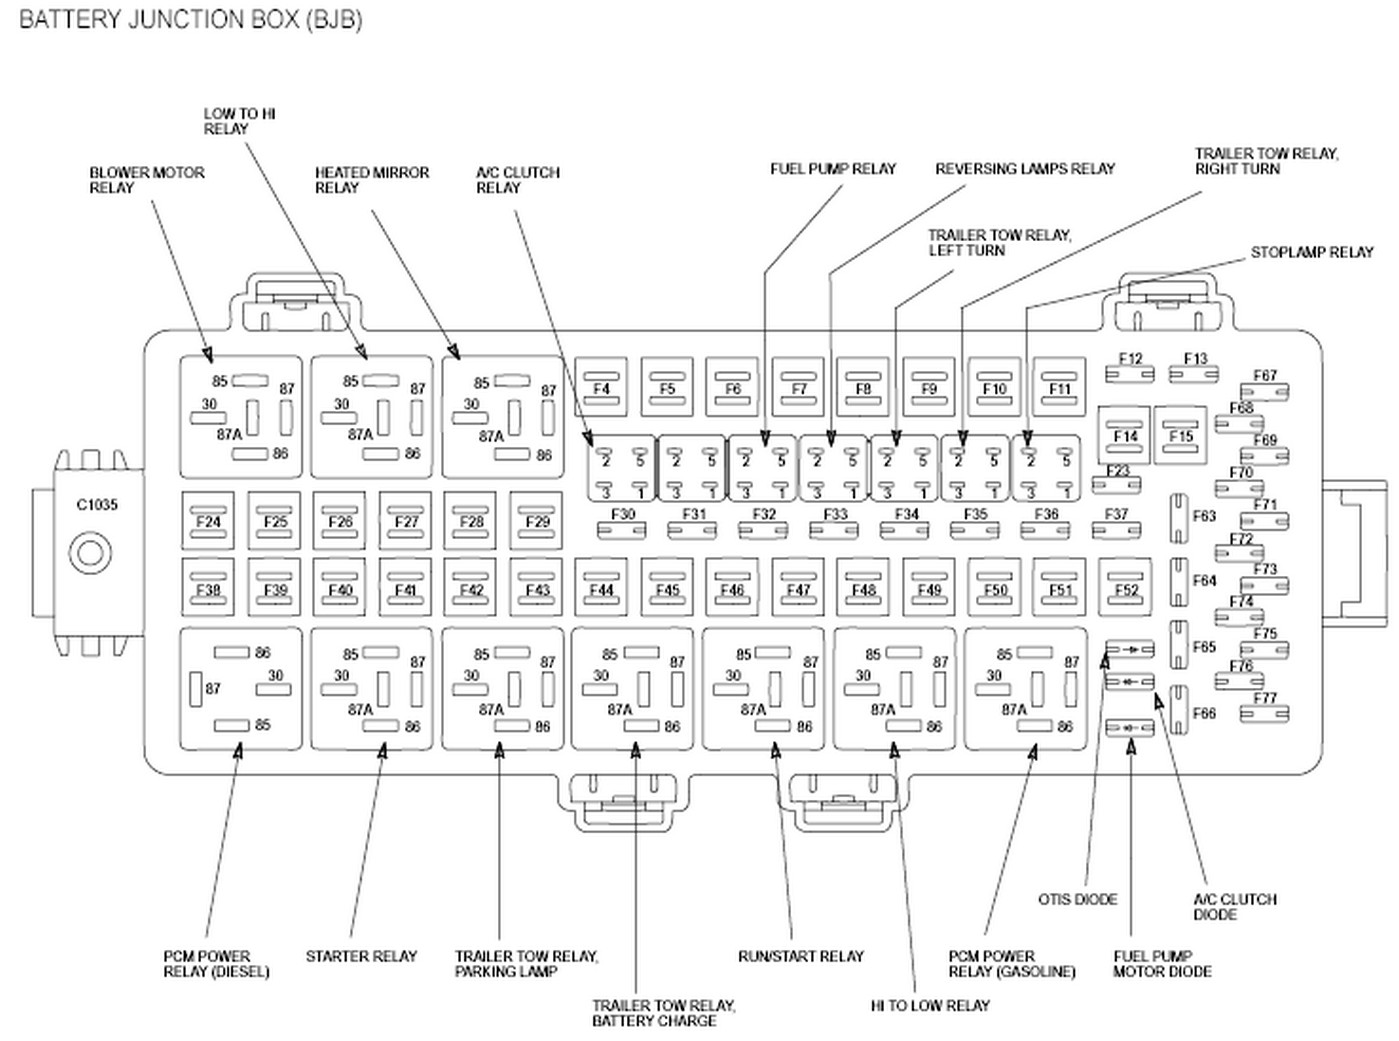 2011 F250 Fuse Panel Diagram Simple Electrical Wiring Ford Truck Box Image Details